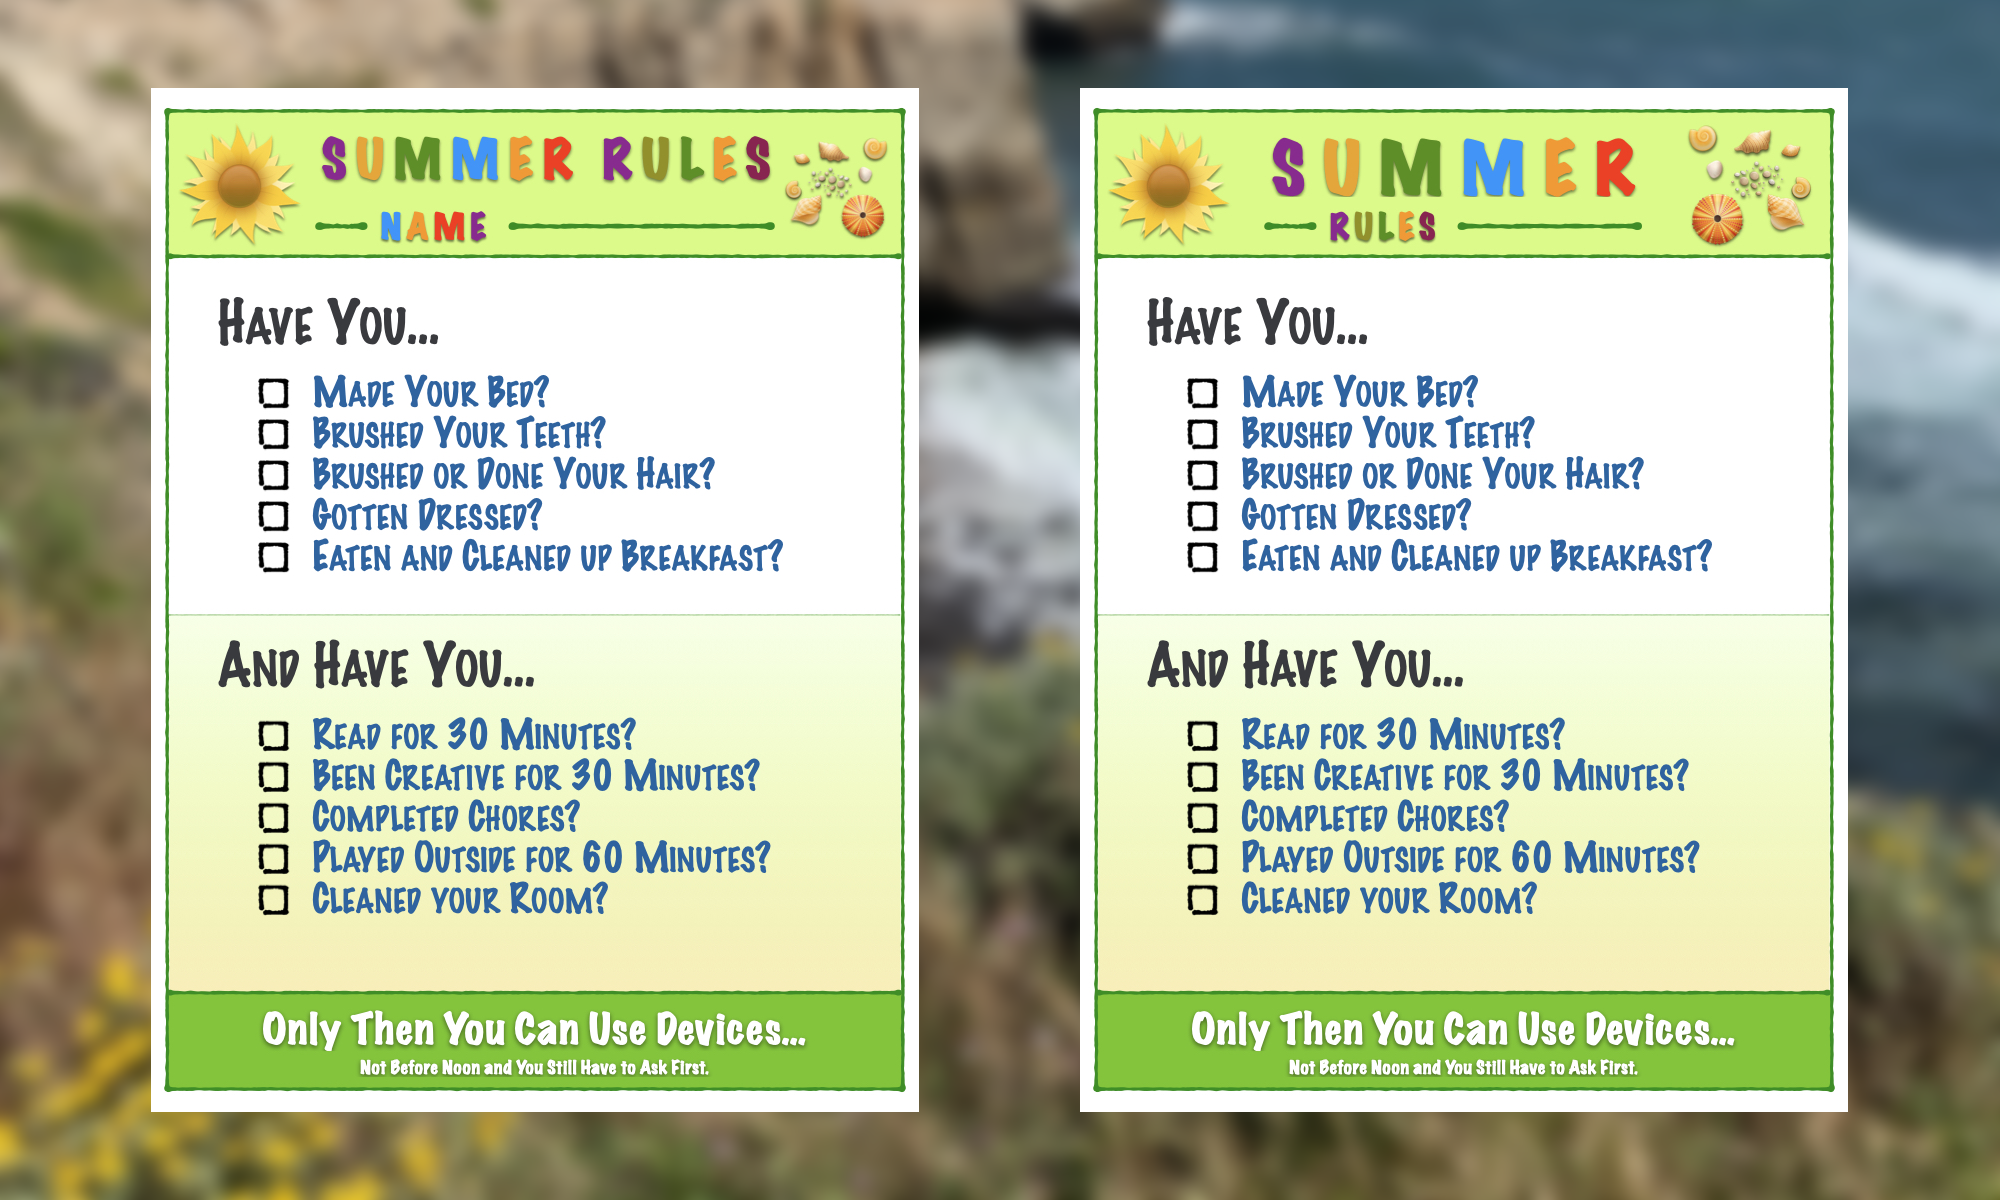 Summer Rules Blog